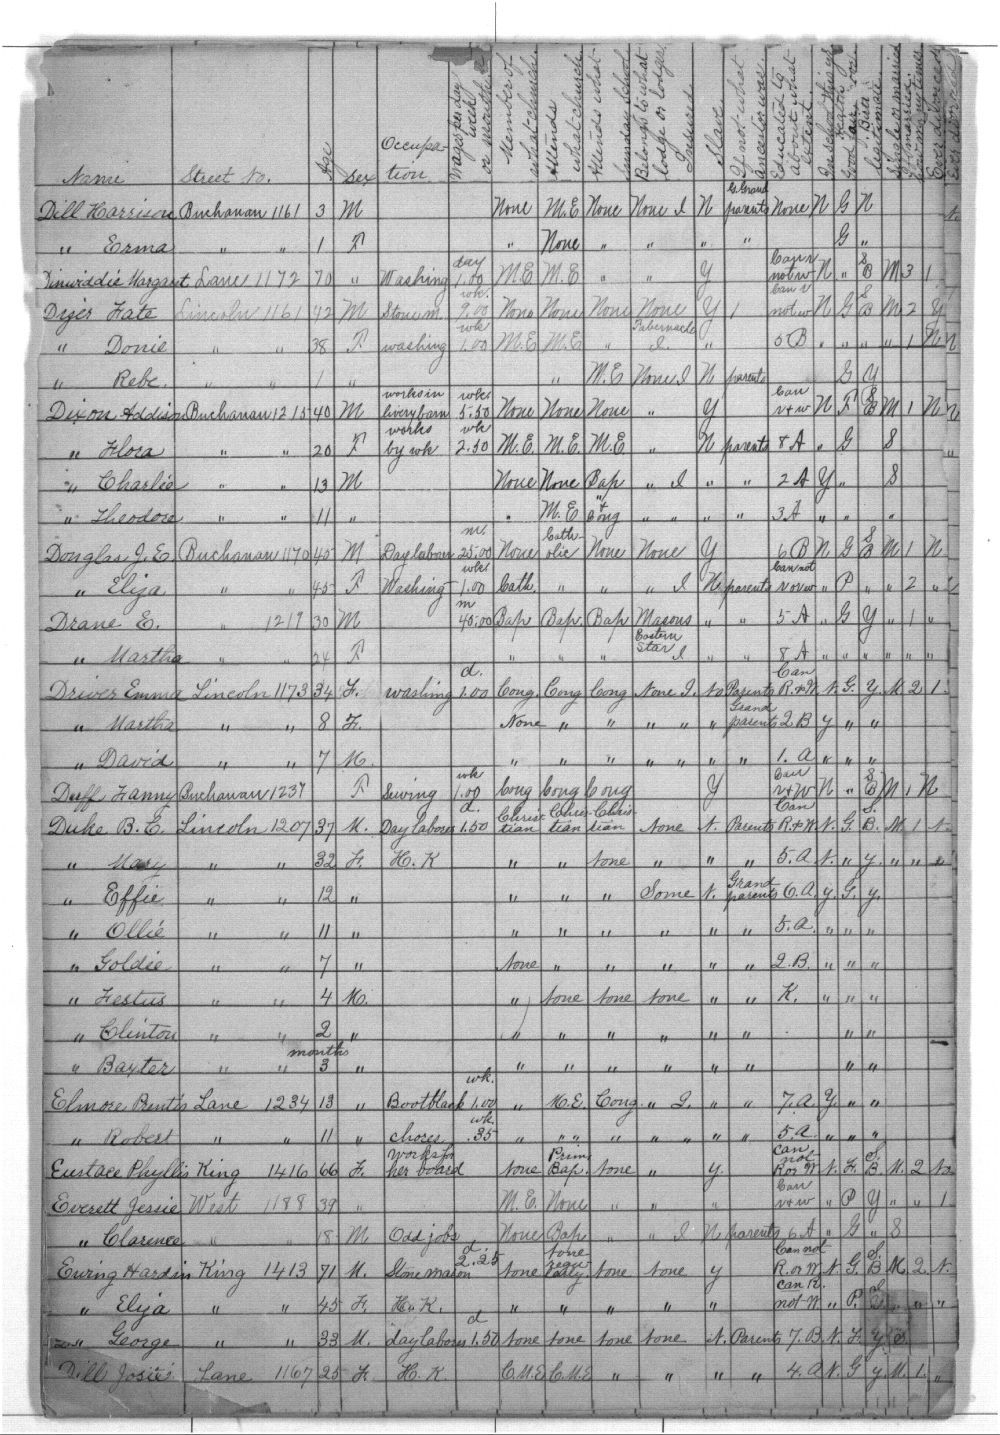 Tennessee Town census - 3